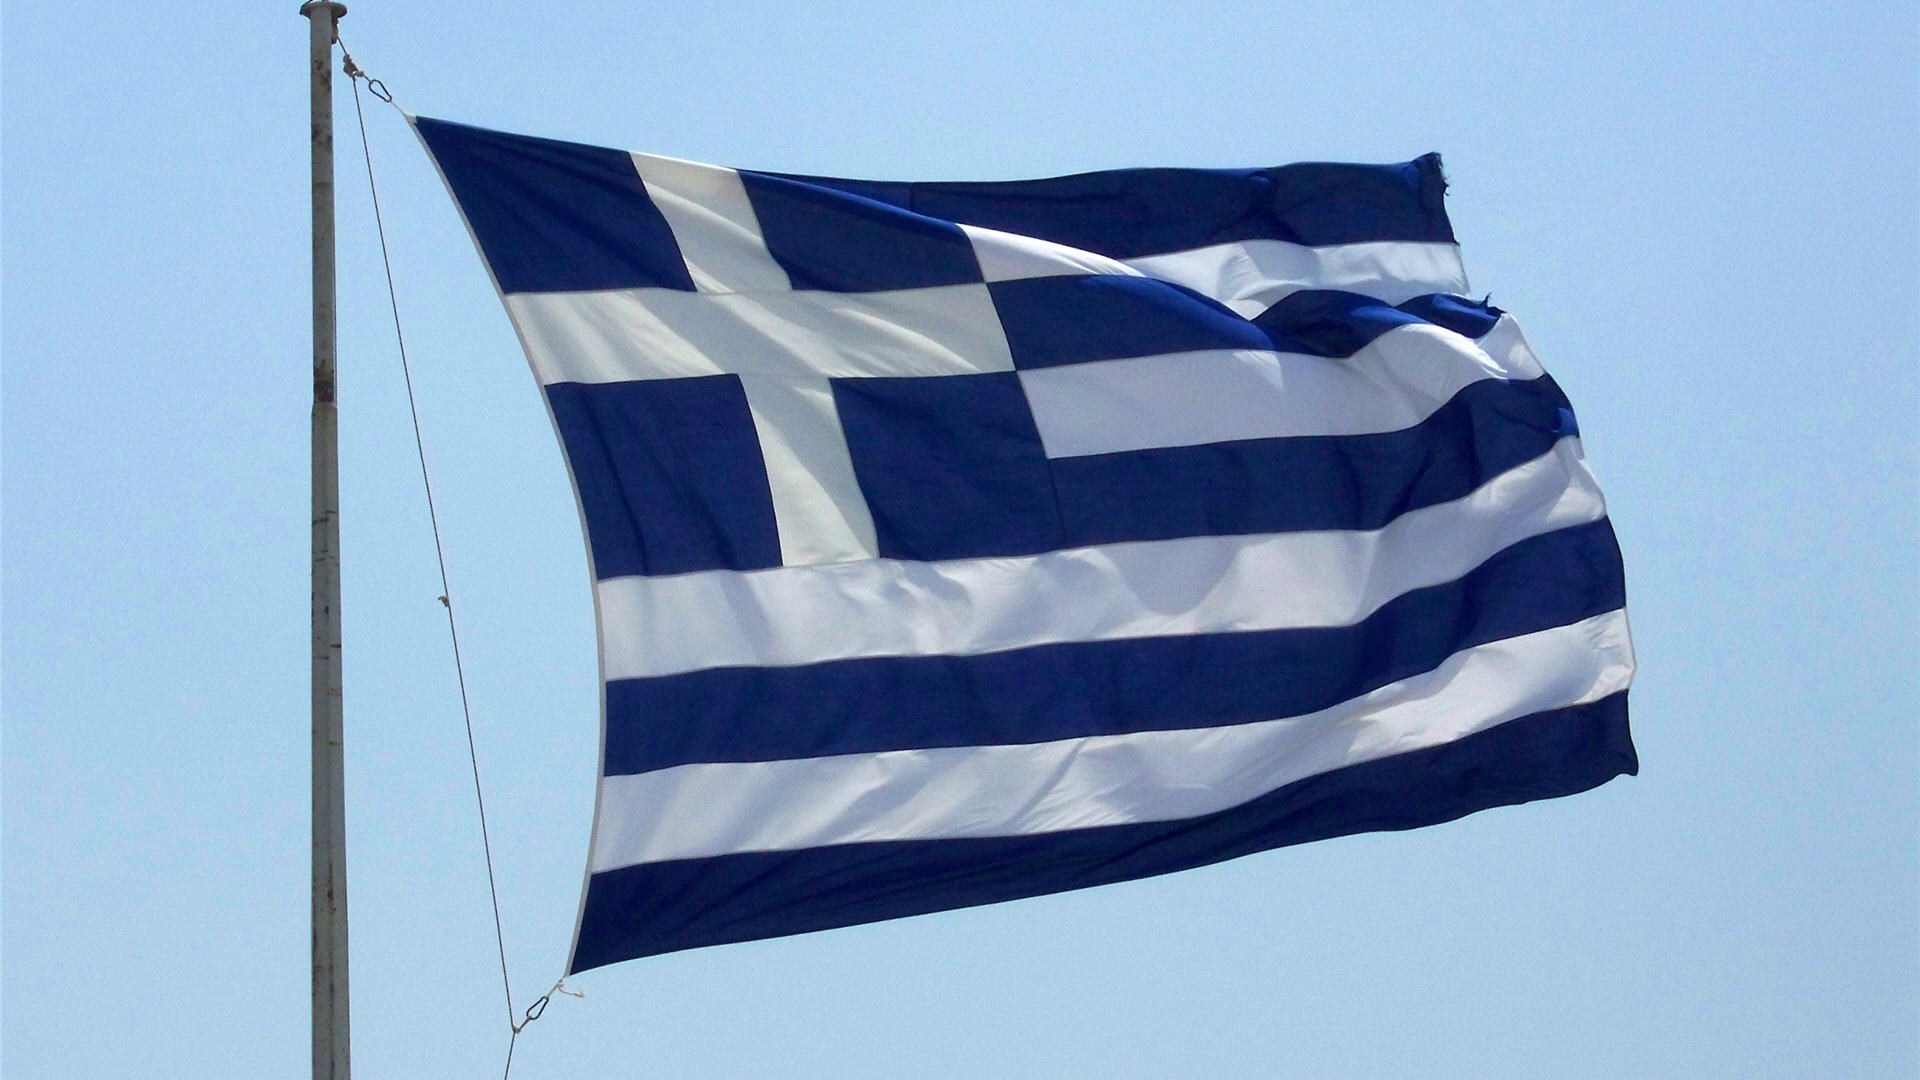 Greek Flag Background Wallpaper HD 1920x1080 6397 1920x1080